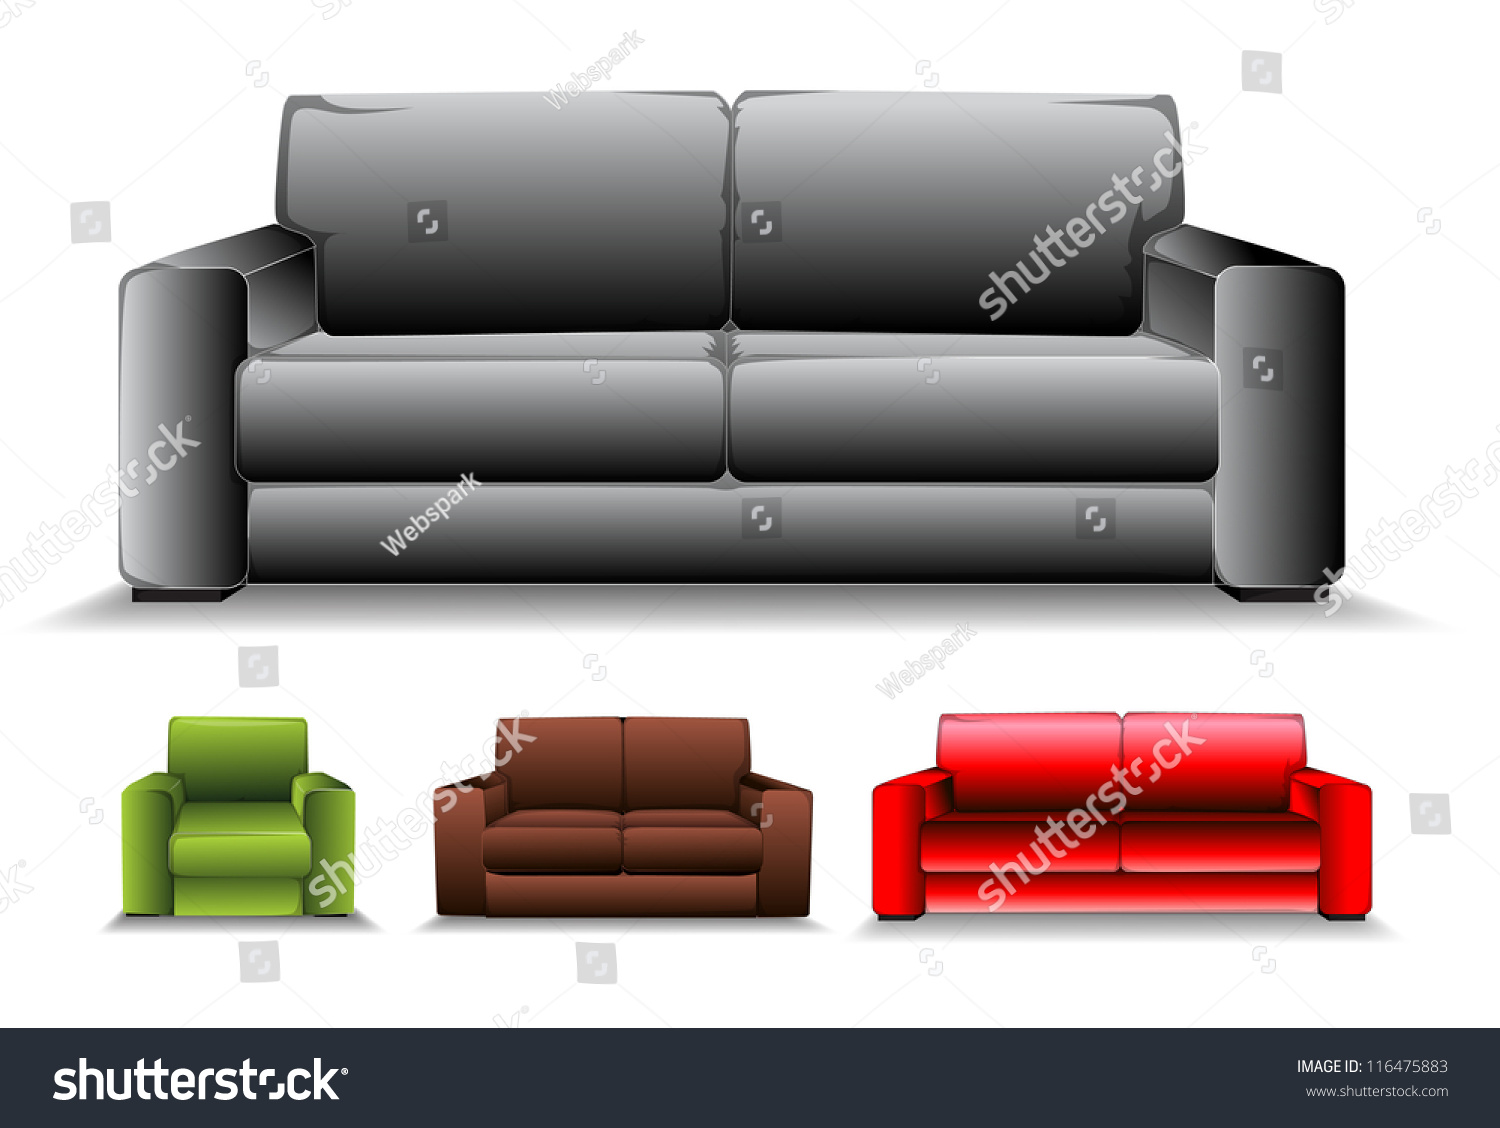 Sofa bed set bed room sofa set double bed sofa set for Double bed and sofa set